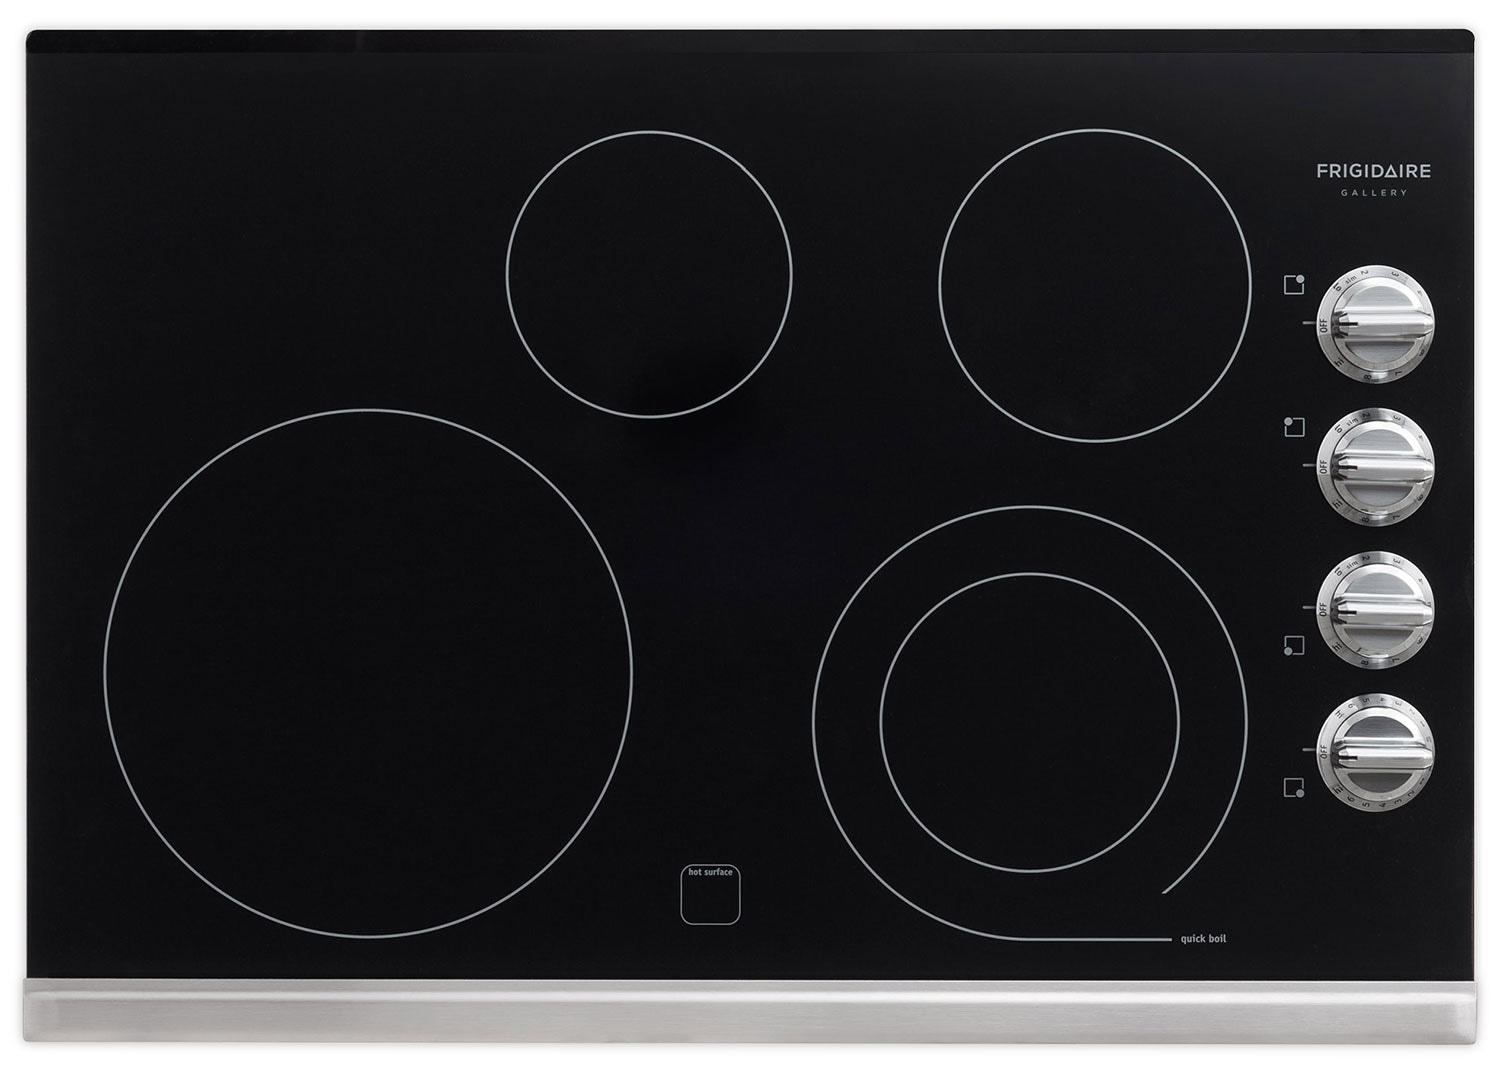 Frigidaire Gallery Stainless Steel Electric Cooktop - FGEC3045PS